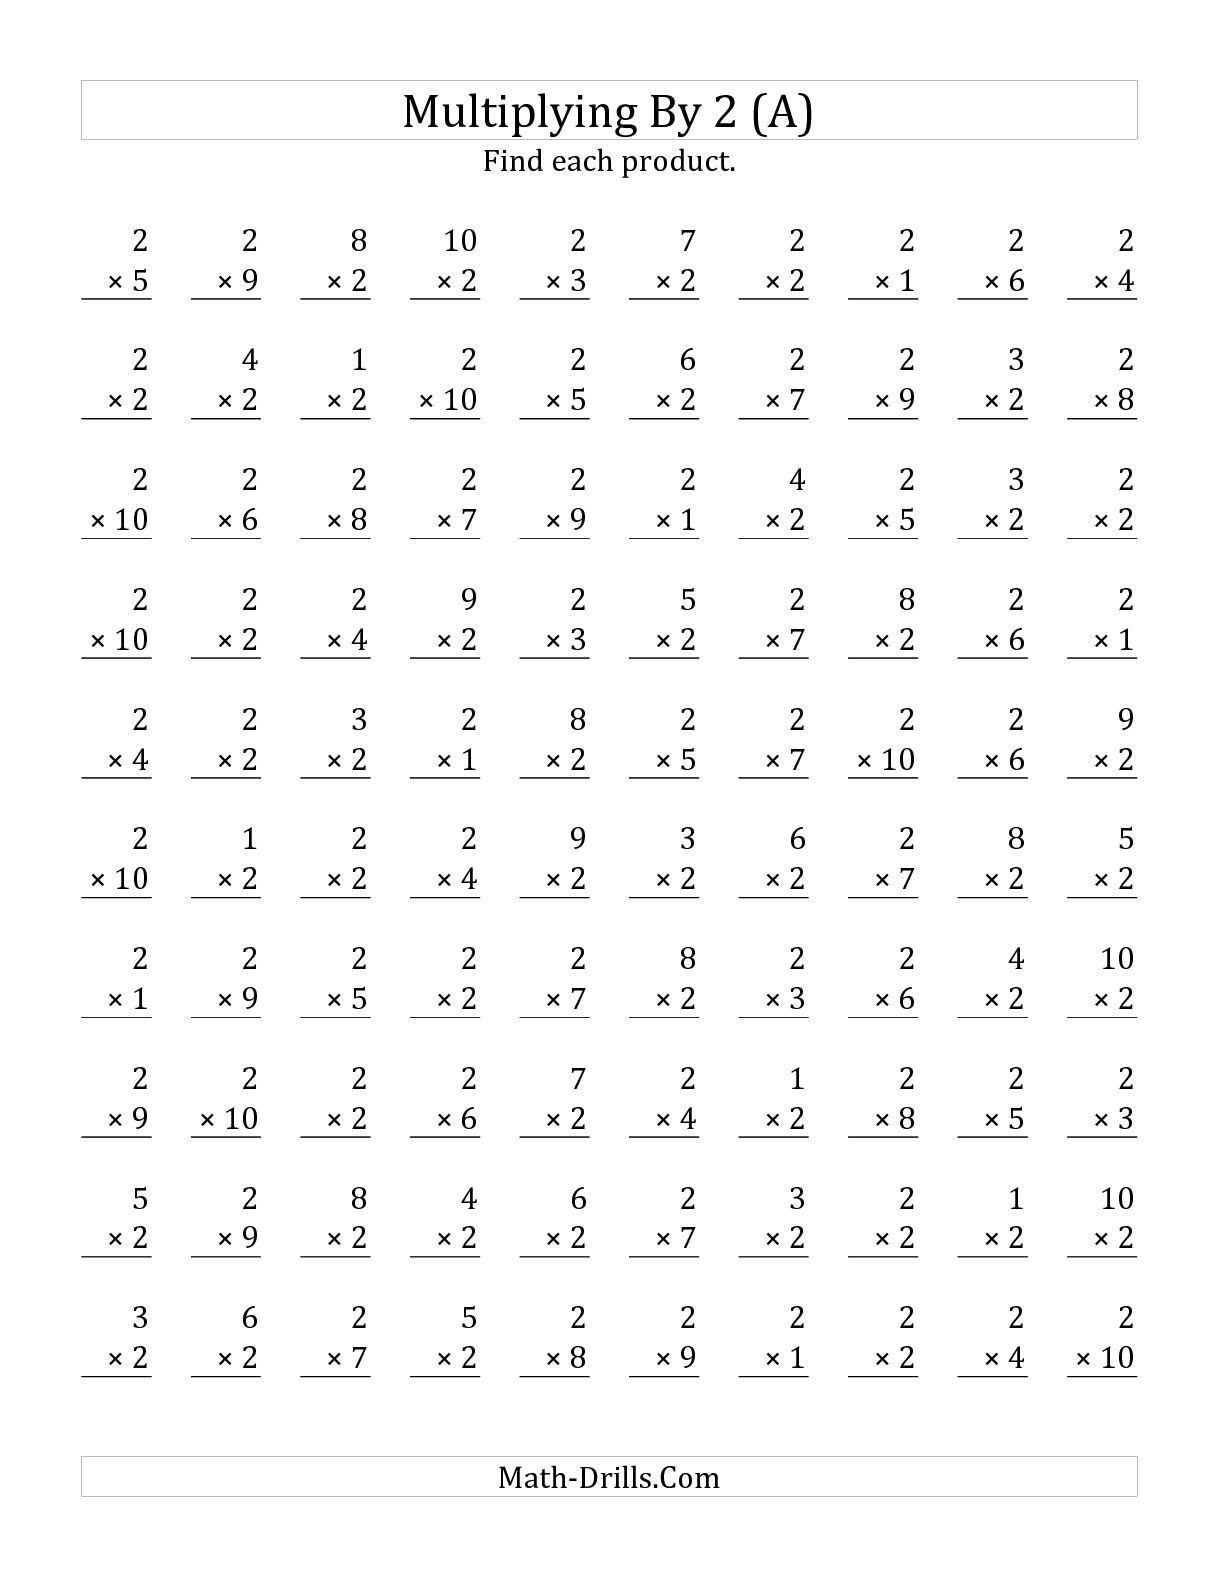 The Multiplying 1 To 10 By 2 A Math Worksheet From The Multiplication Facts Worksheets Page